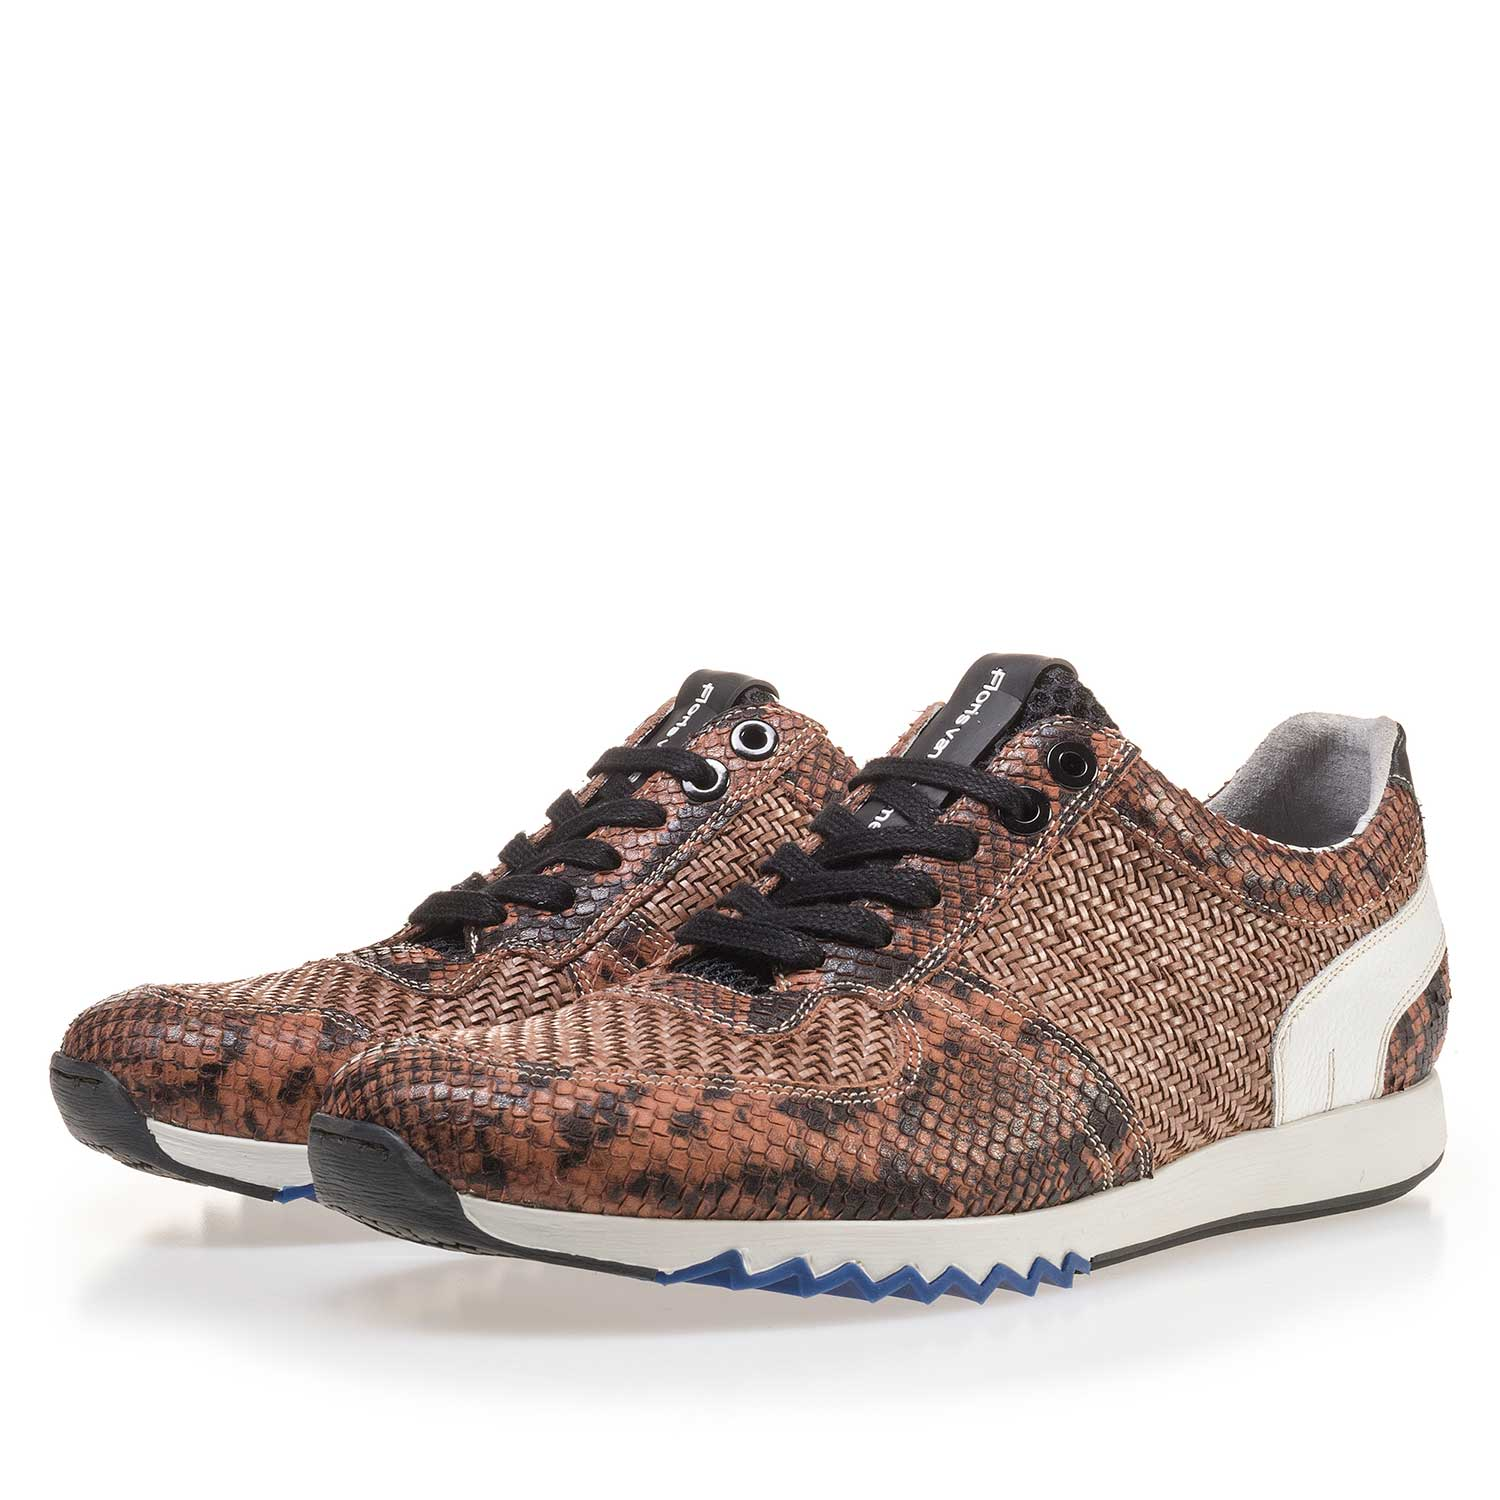 16171/06 - Cognac-coloured leather sneaker finished with a snake print